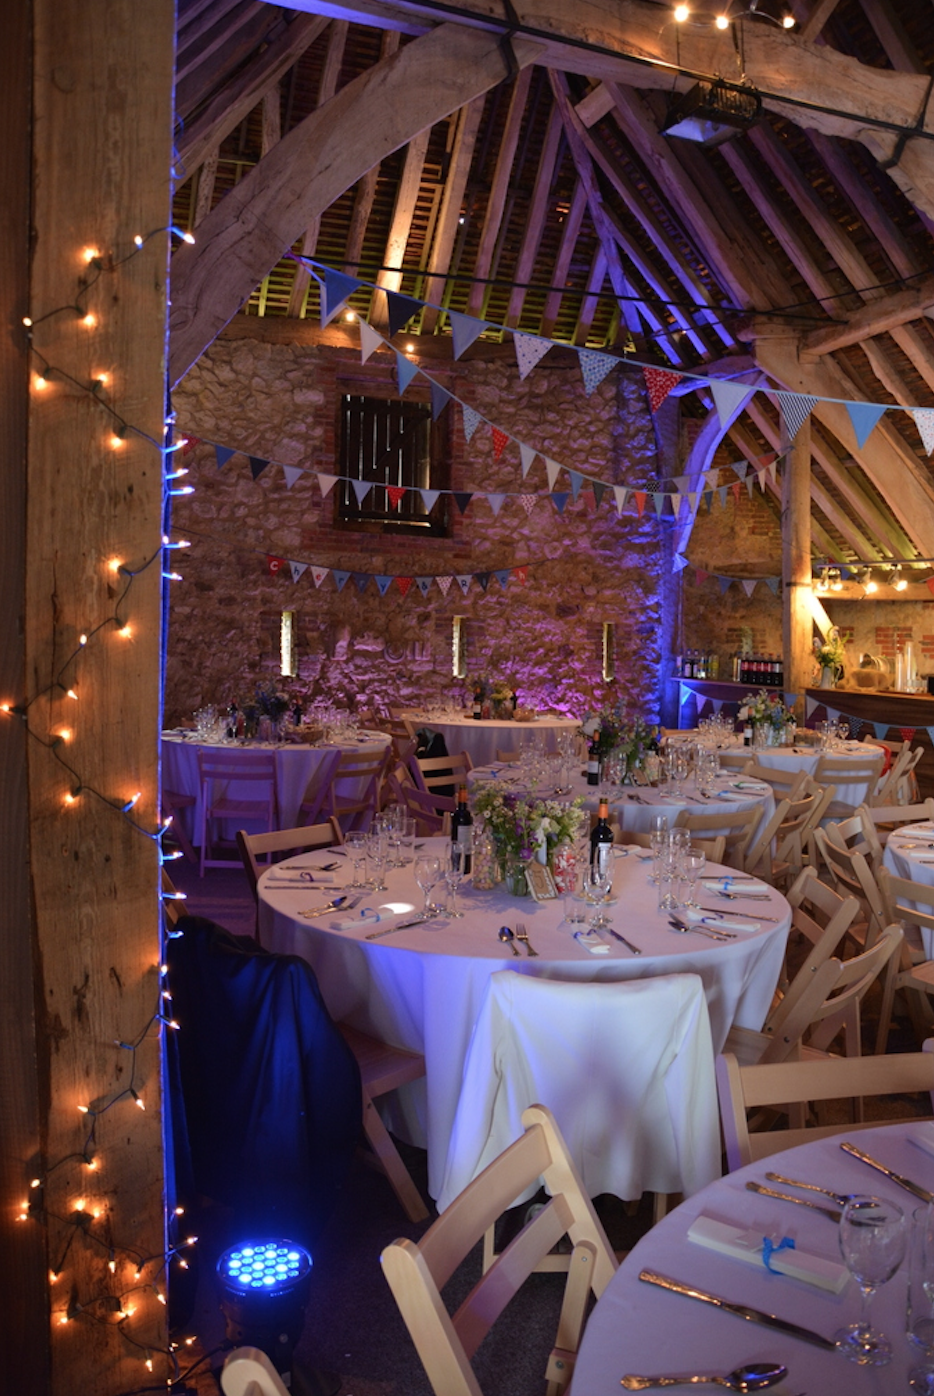 Titchfield Barn Wedding at set up and Photographed by Whiteley Weddings - Hampshire Wedding Photography